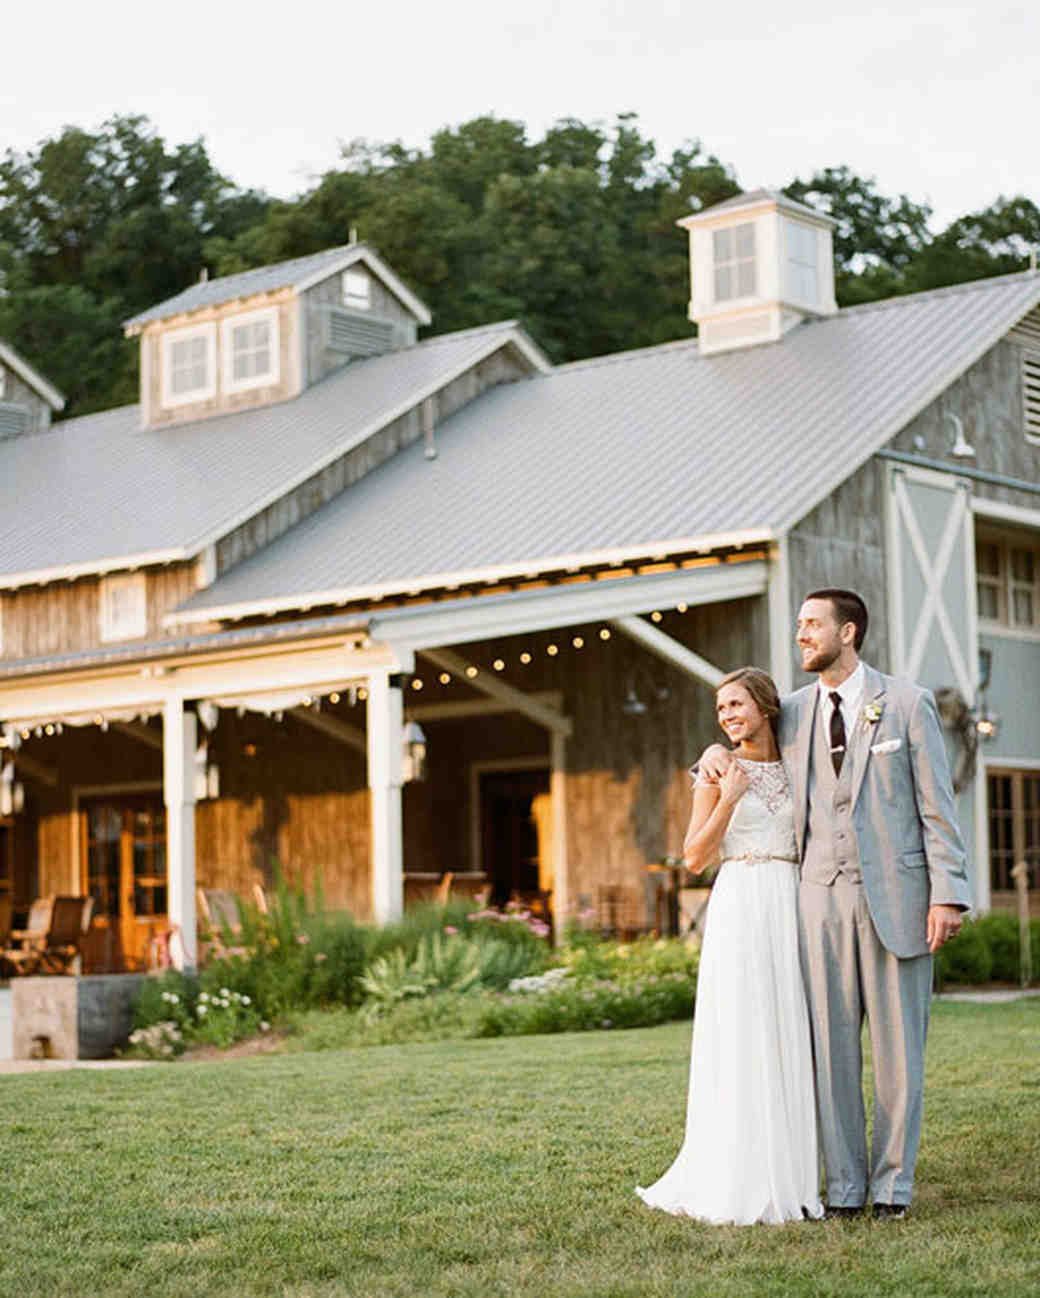 Question To Ask Wedding Venue: 9 Questions To Ask Your Wedding Venue